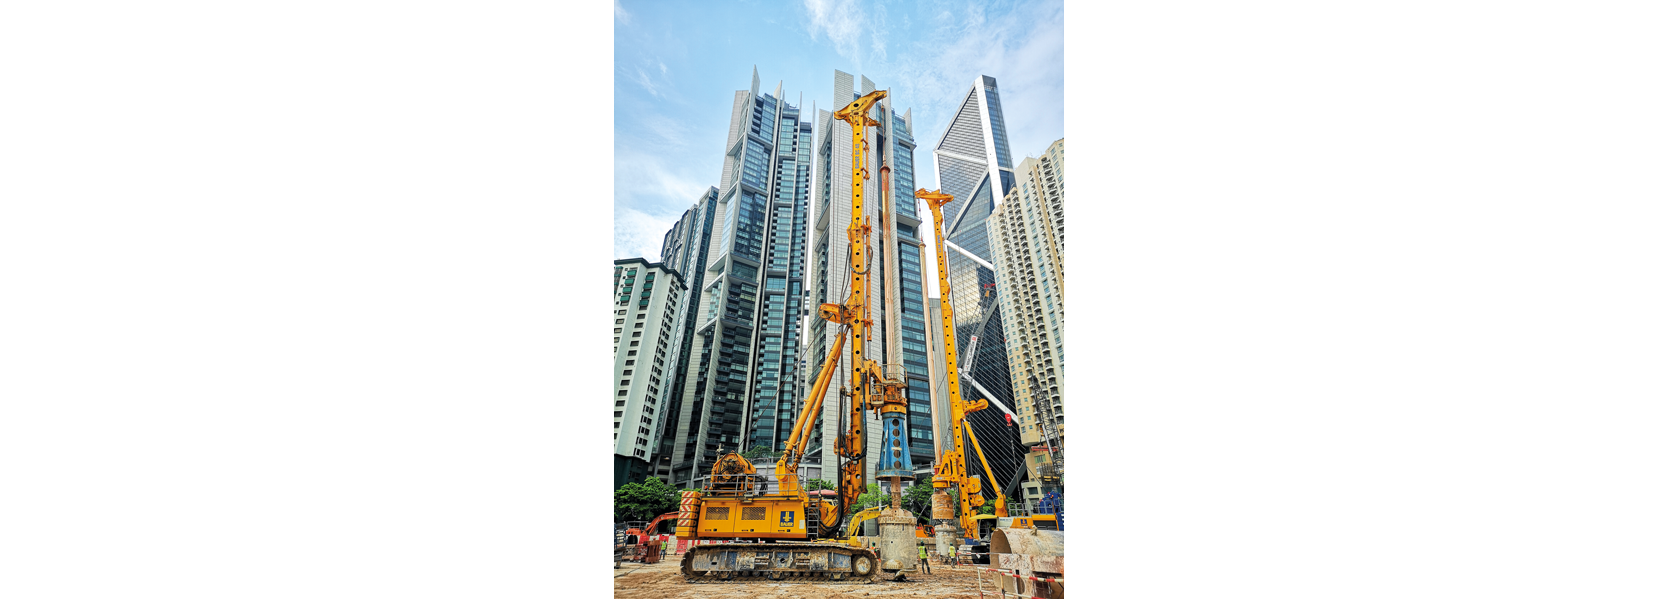 Bauer's record-breaking project in Kuala Lumpur